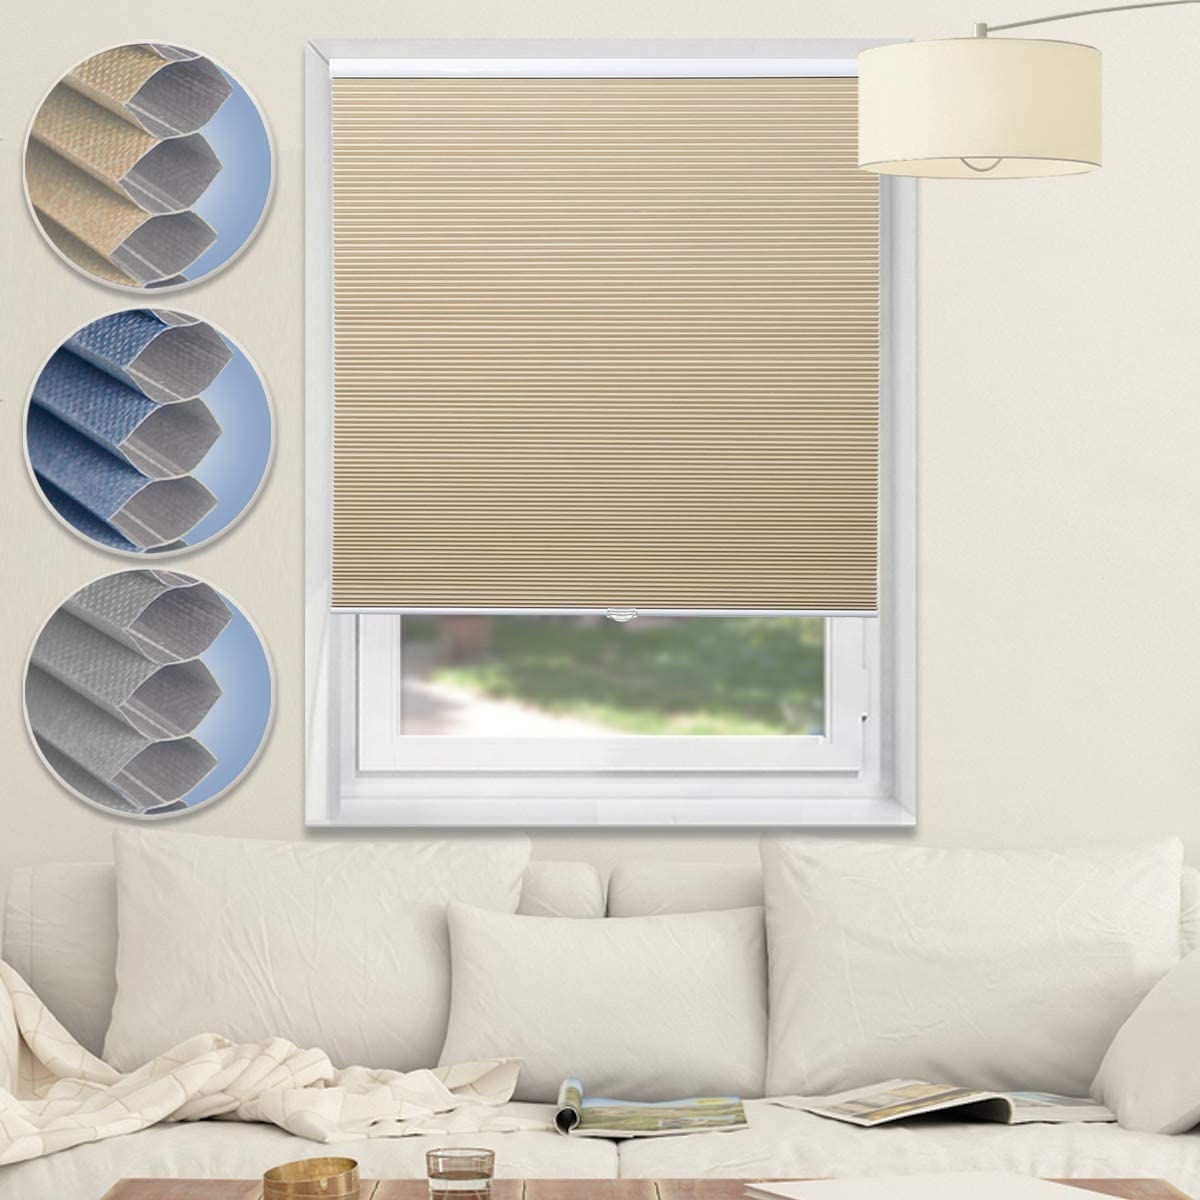 Cordless Blinds Blackout Shades Cellular Window Shades Honeycomb Blinds for Bedroom Kitchen Bathroom, Beige-White, 27x64